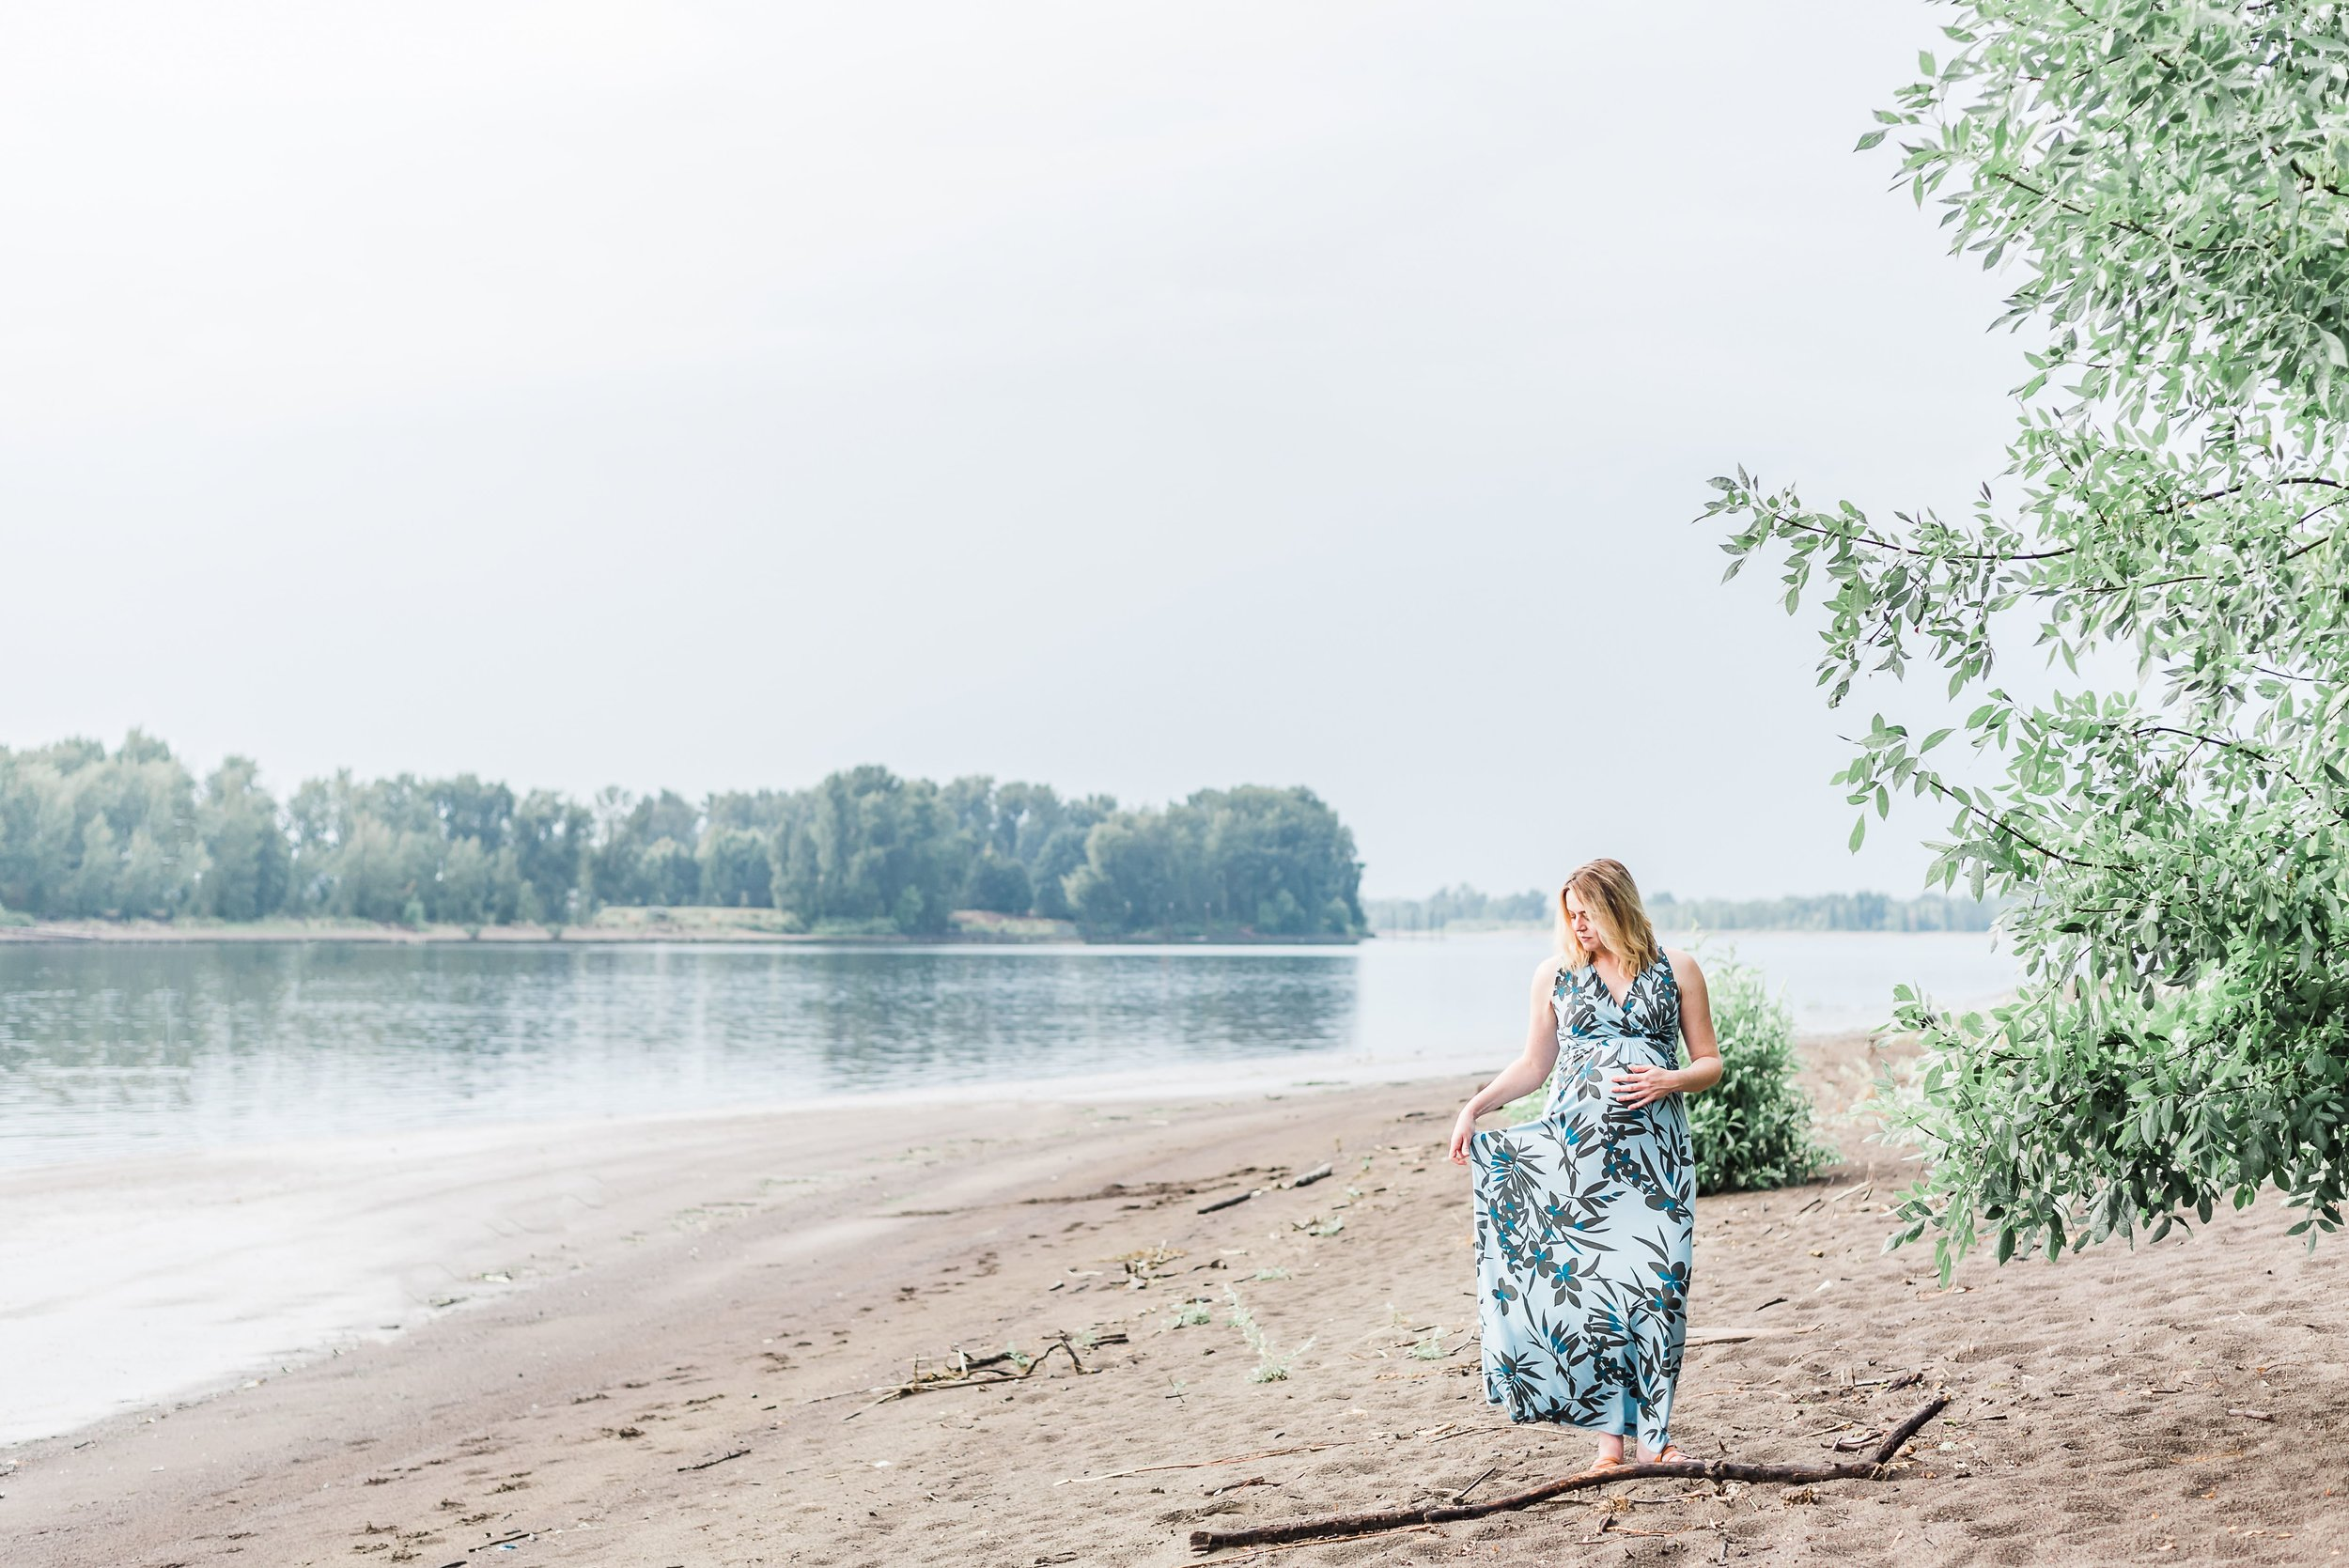 portland maternity photography at kelley point park, portland oregon maternity photos, maternity photoshoot ideas outdoor, maternity photoshoot outfits, maternity photoshoot dress, maternity photoshoot poses mothers, pregnancy photos river